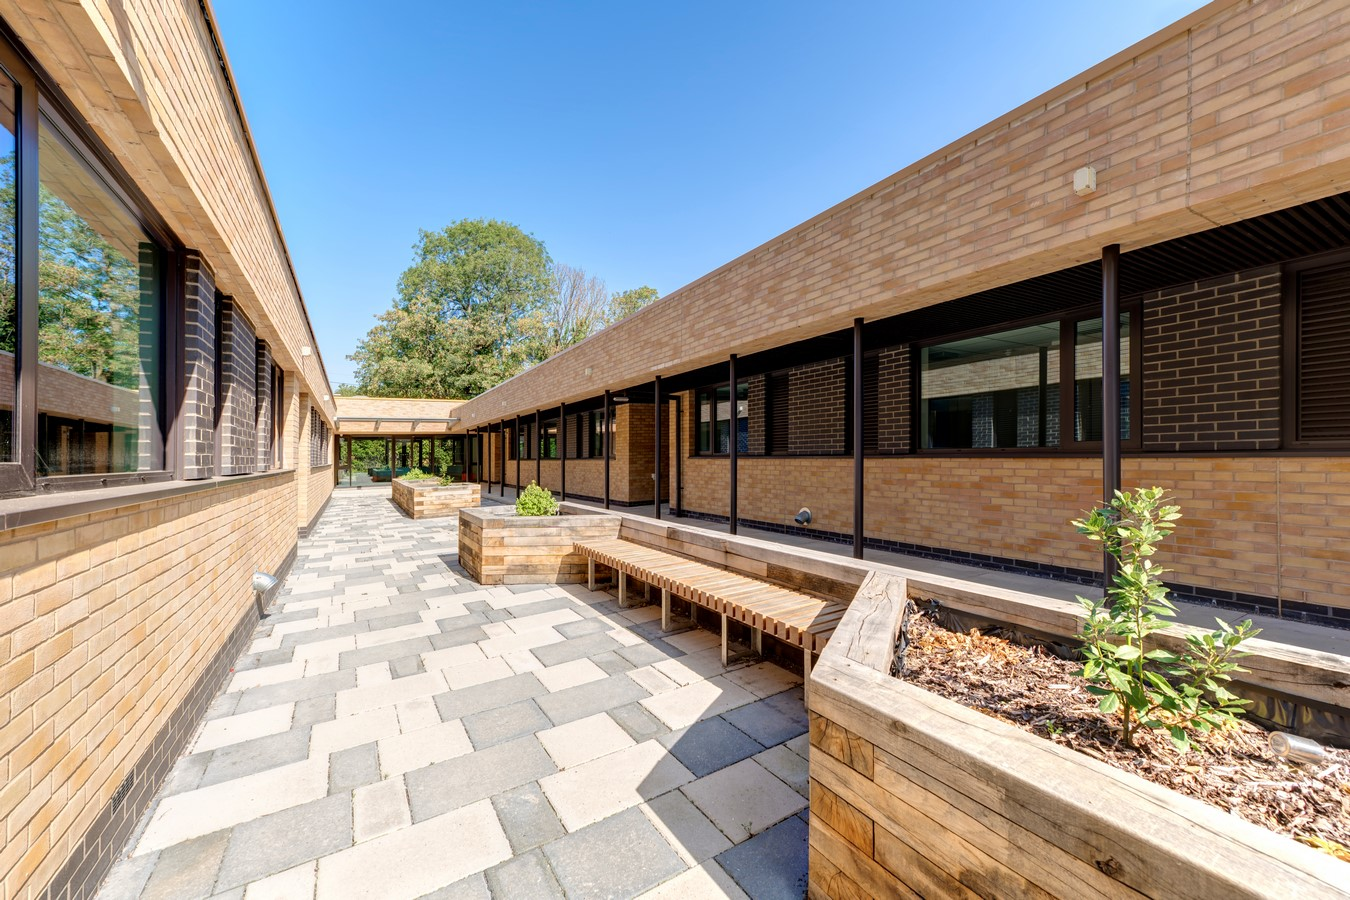 Battersea Dogs & Cats Home by Jonathan Clark Architects - Sheet1